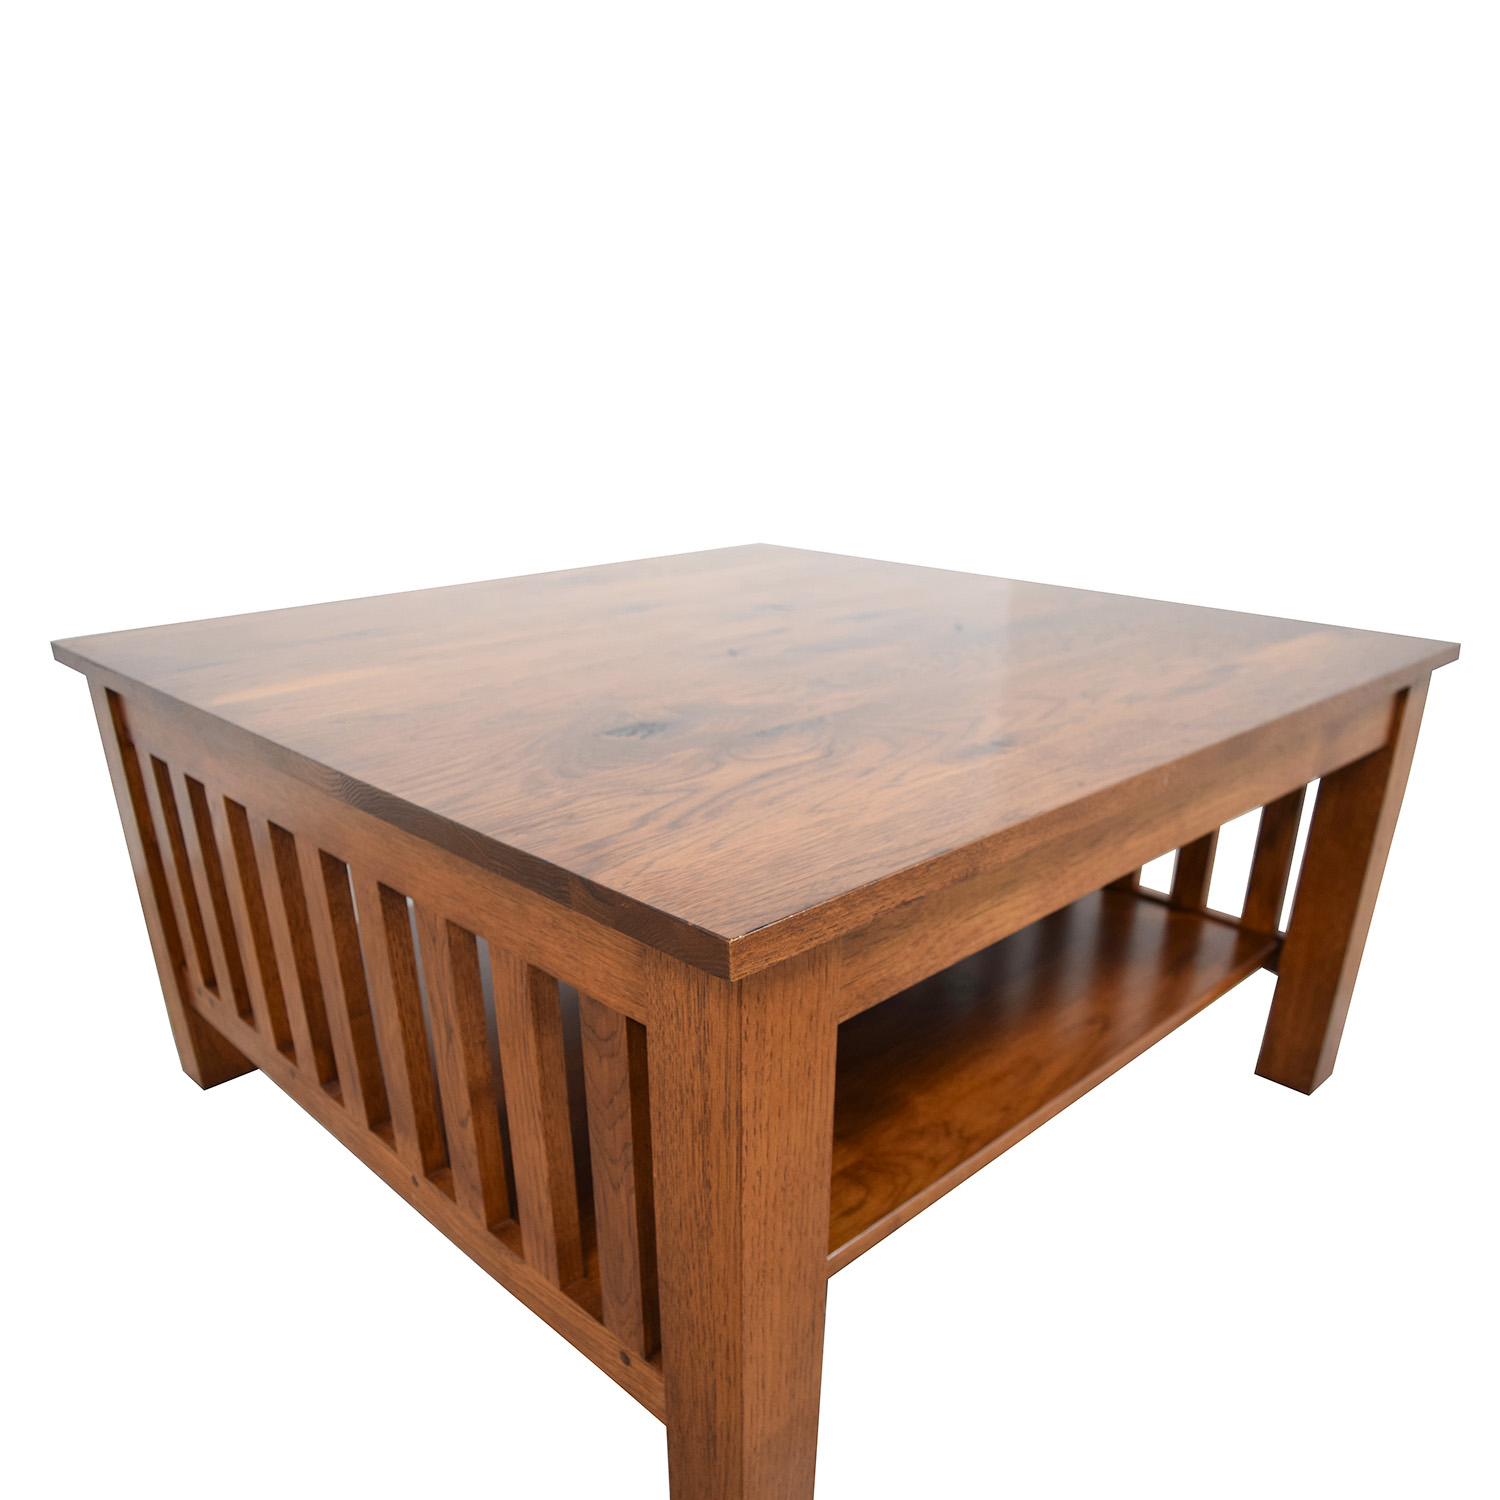 buy DutchCrafters DutchCrafters Square Coffee Table online